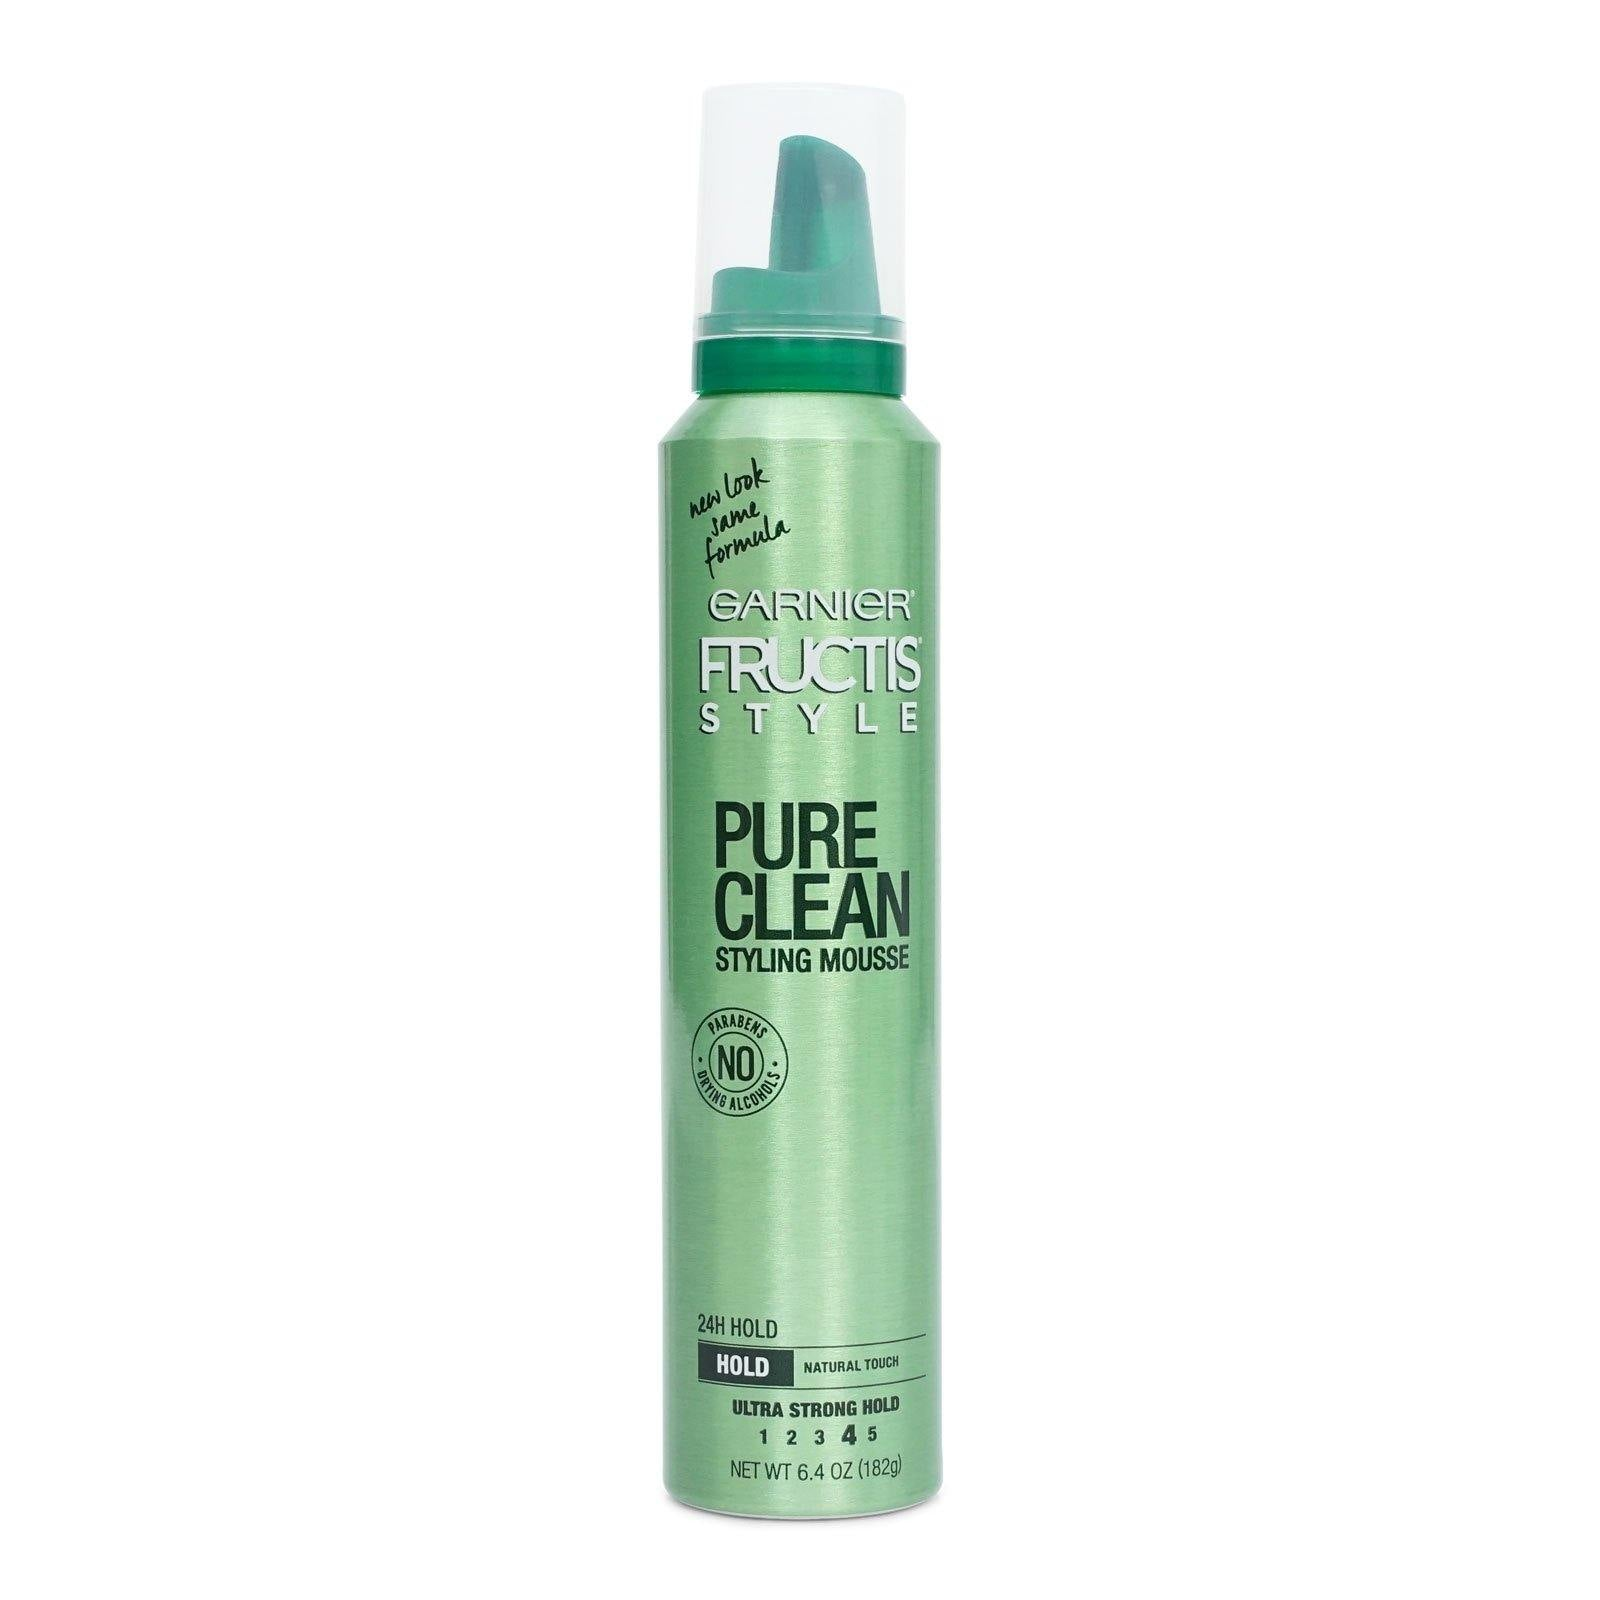 GARNIER PURE CLEAN STYLING MOUSSE 6.4 OZ (12/cs)